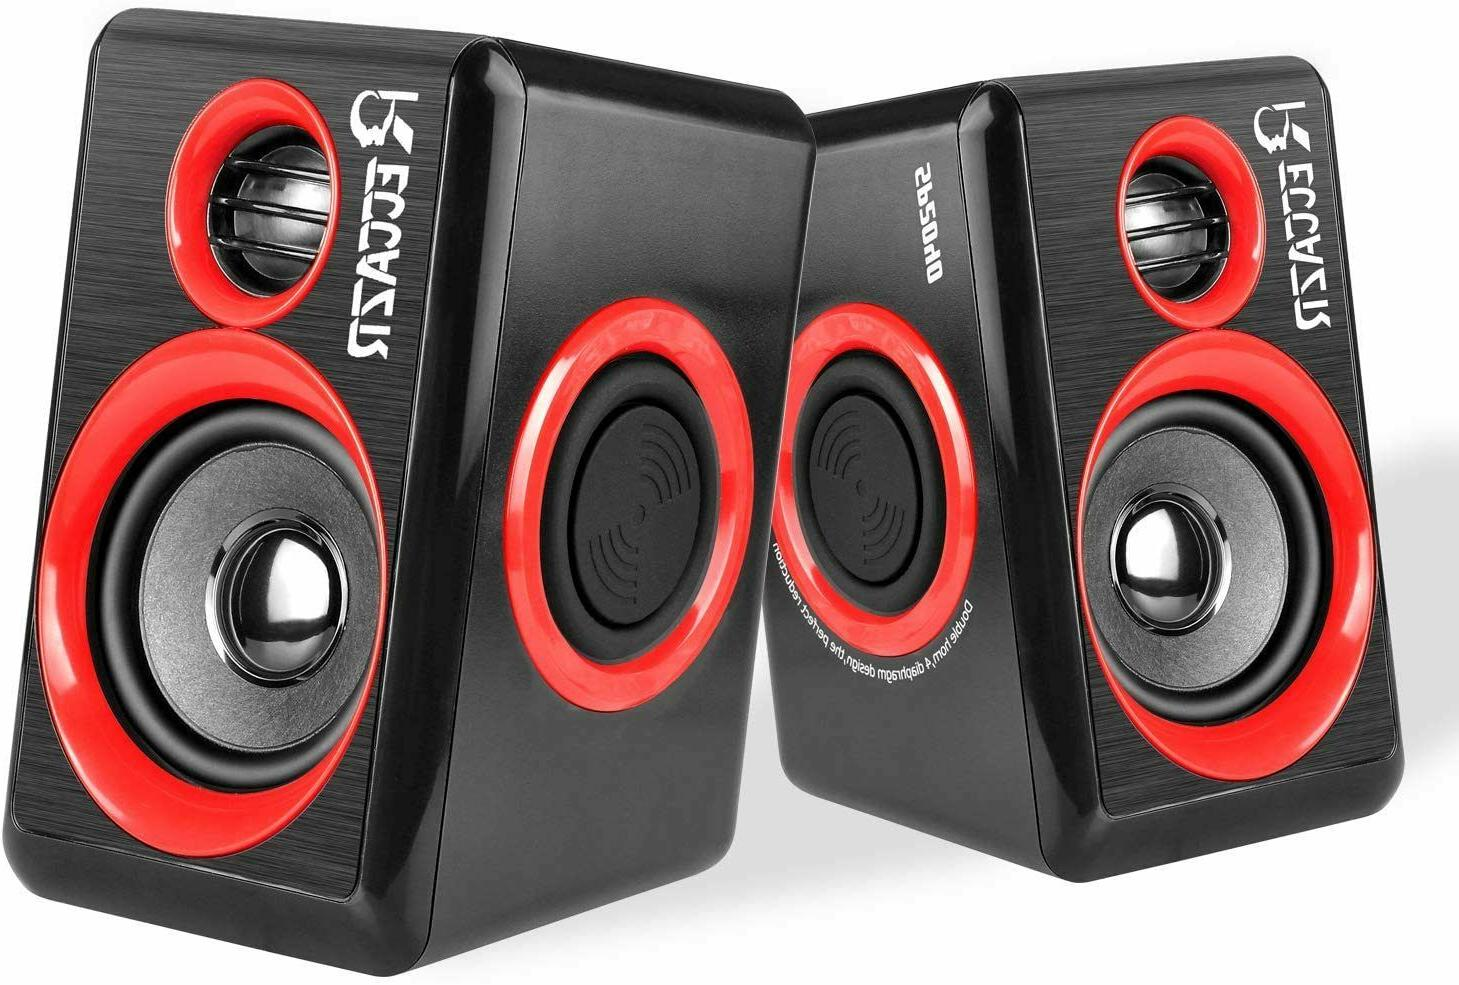 Computer Speakers, 2.0 CH PC Speakers with Surround Sound, U